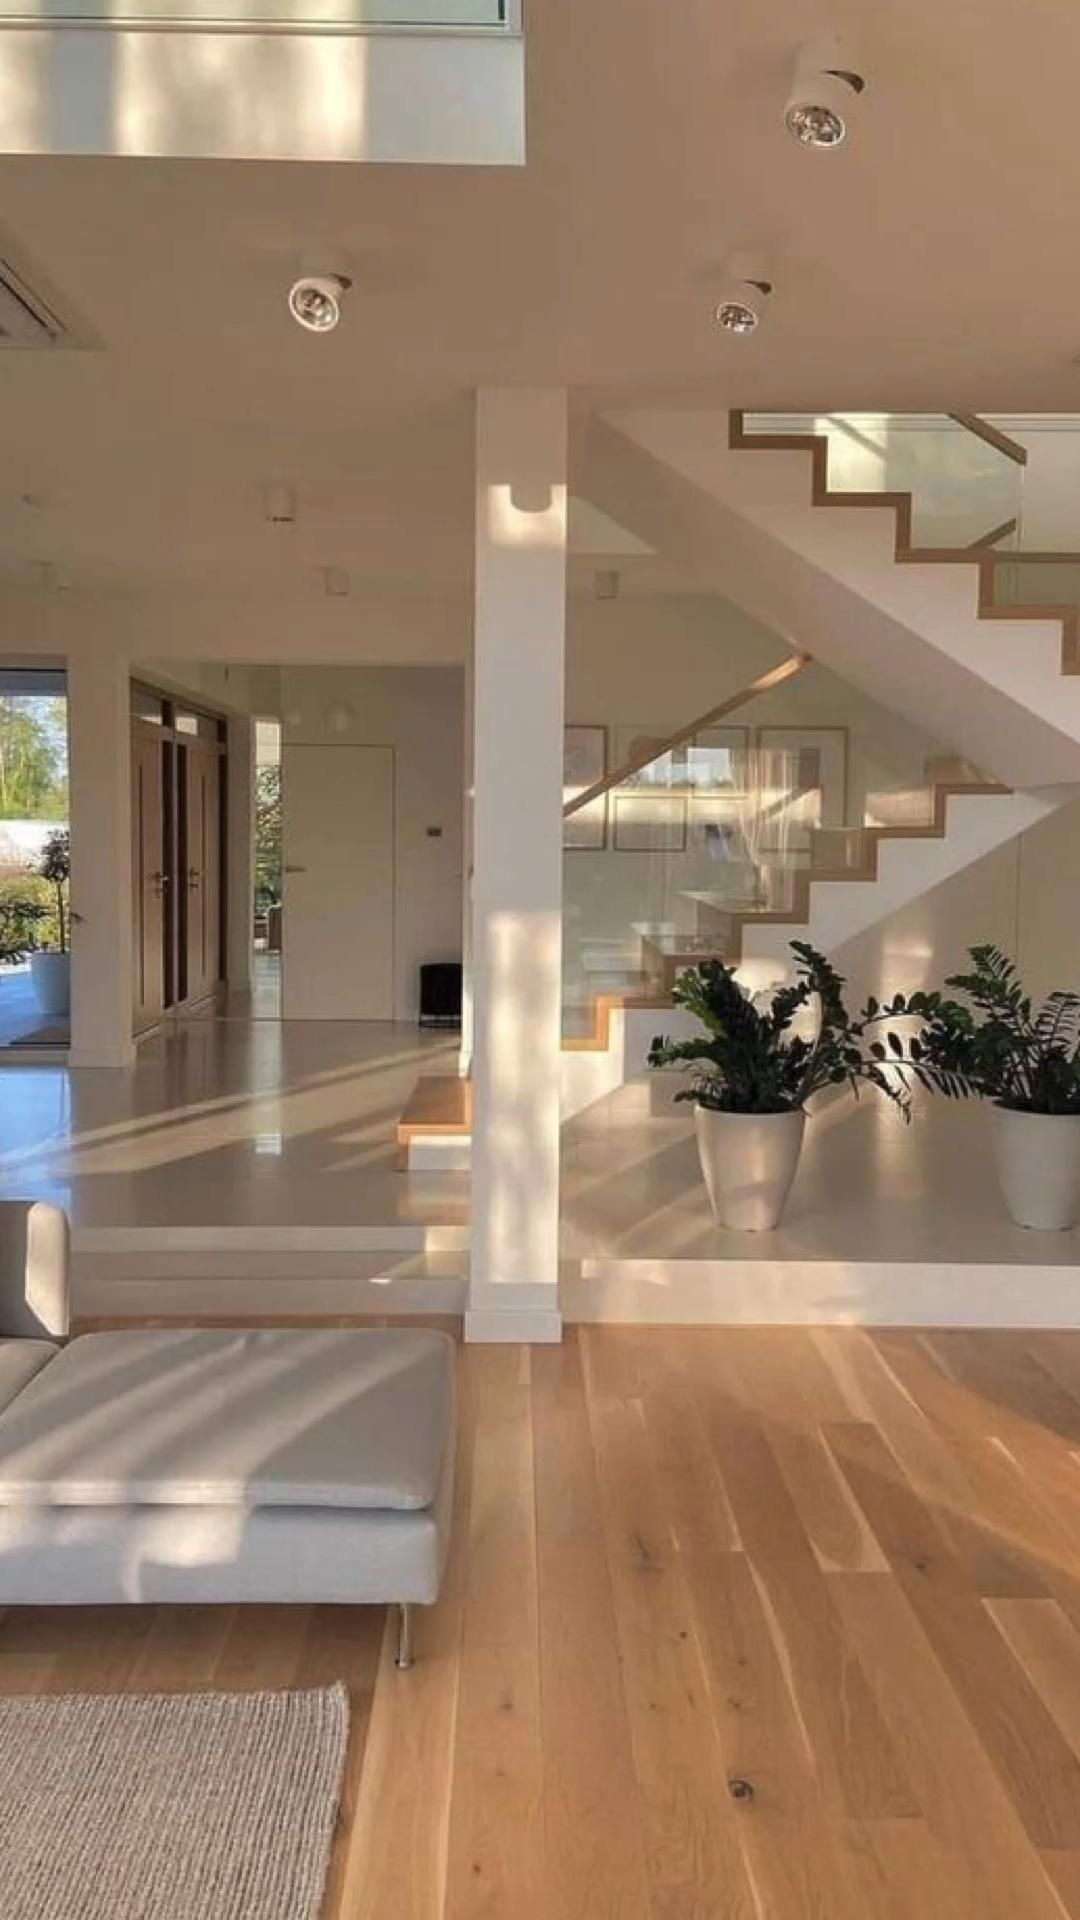 7 Tricks to Make Your Home Look Nice Inside